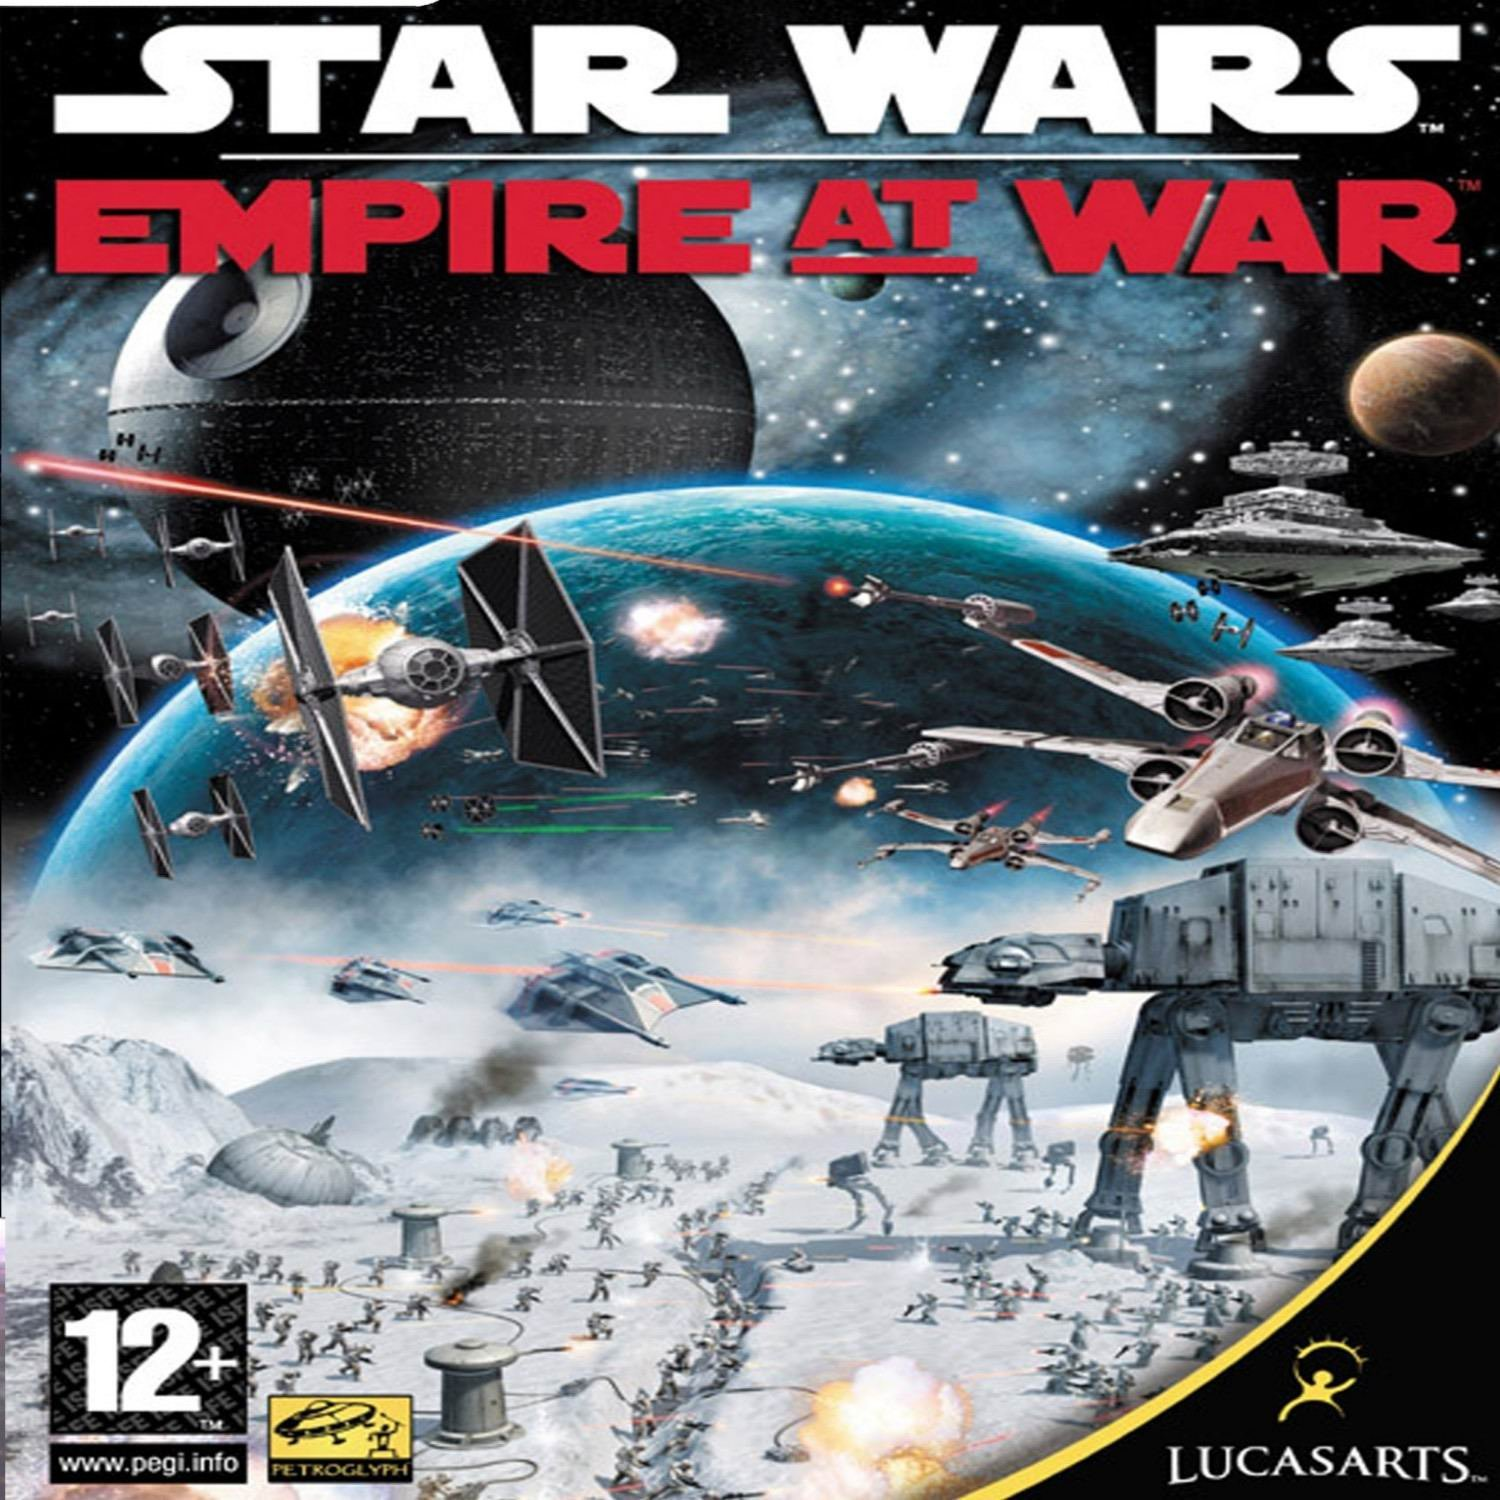 free star wars empire at war full version pc download